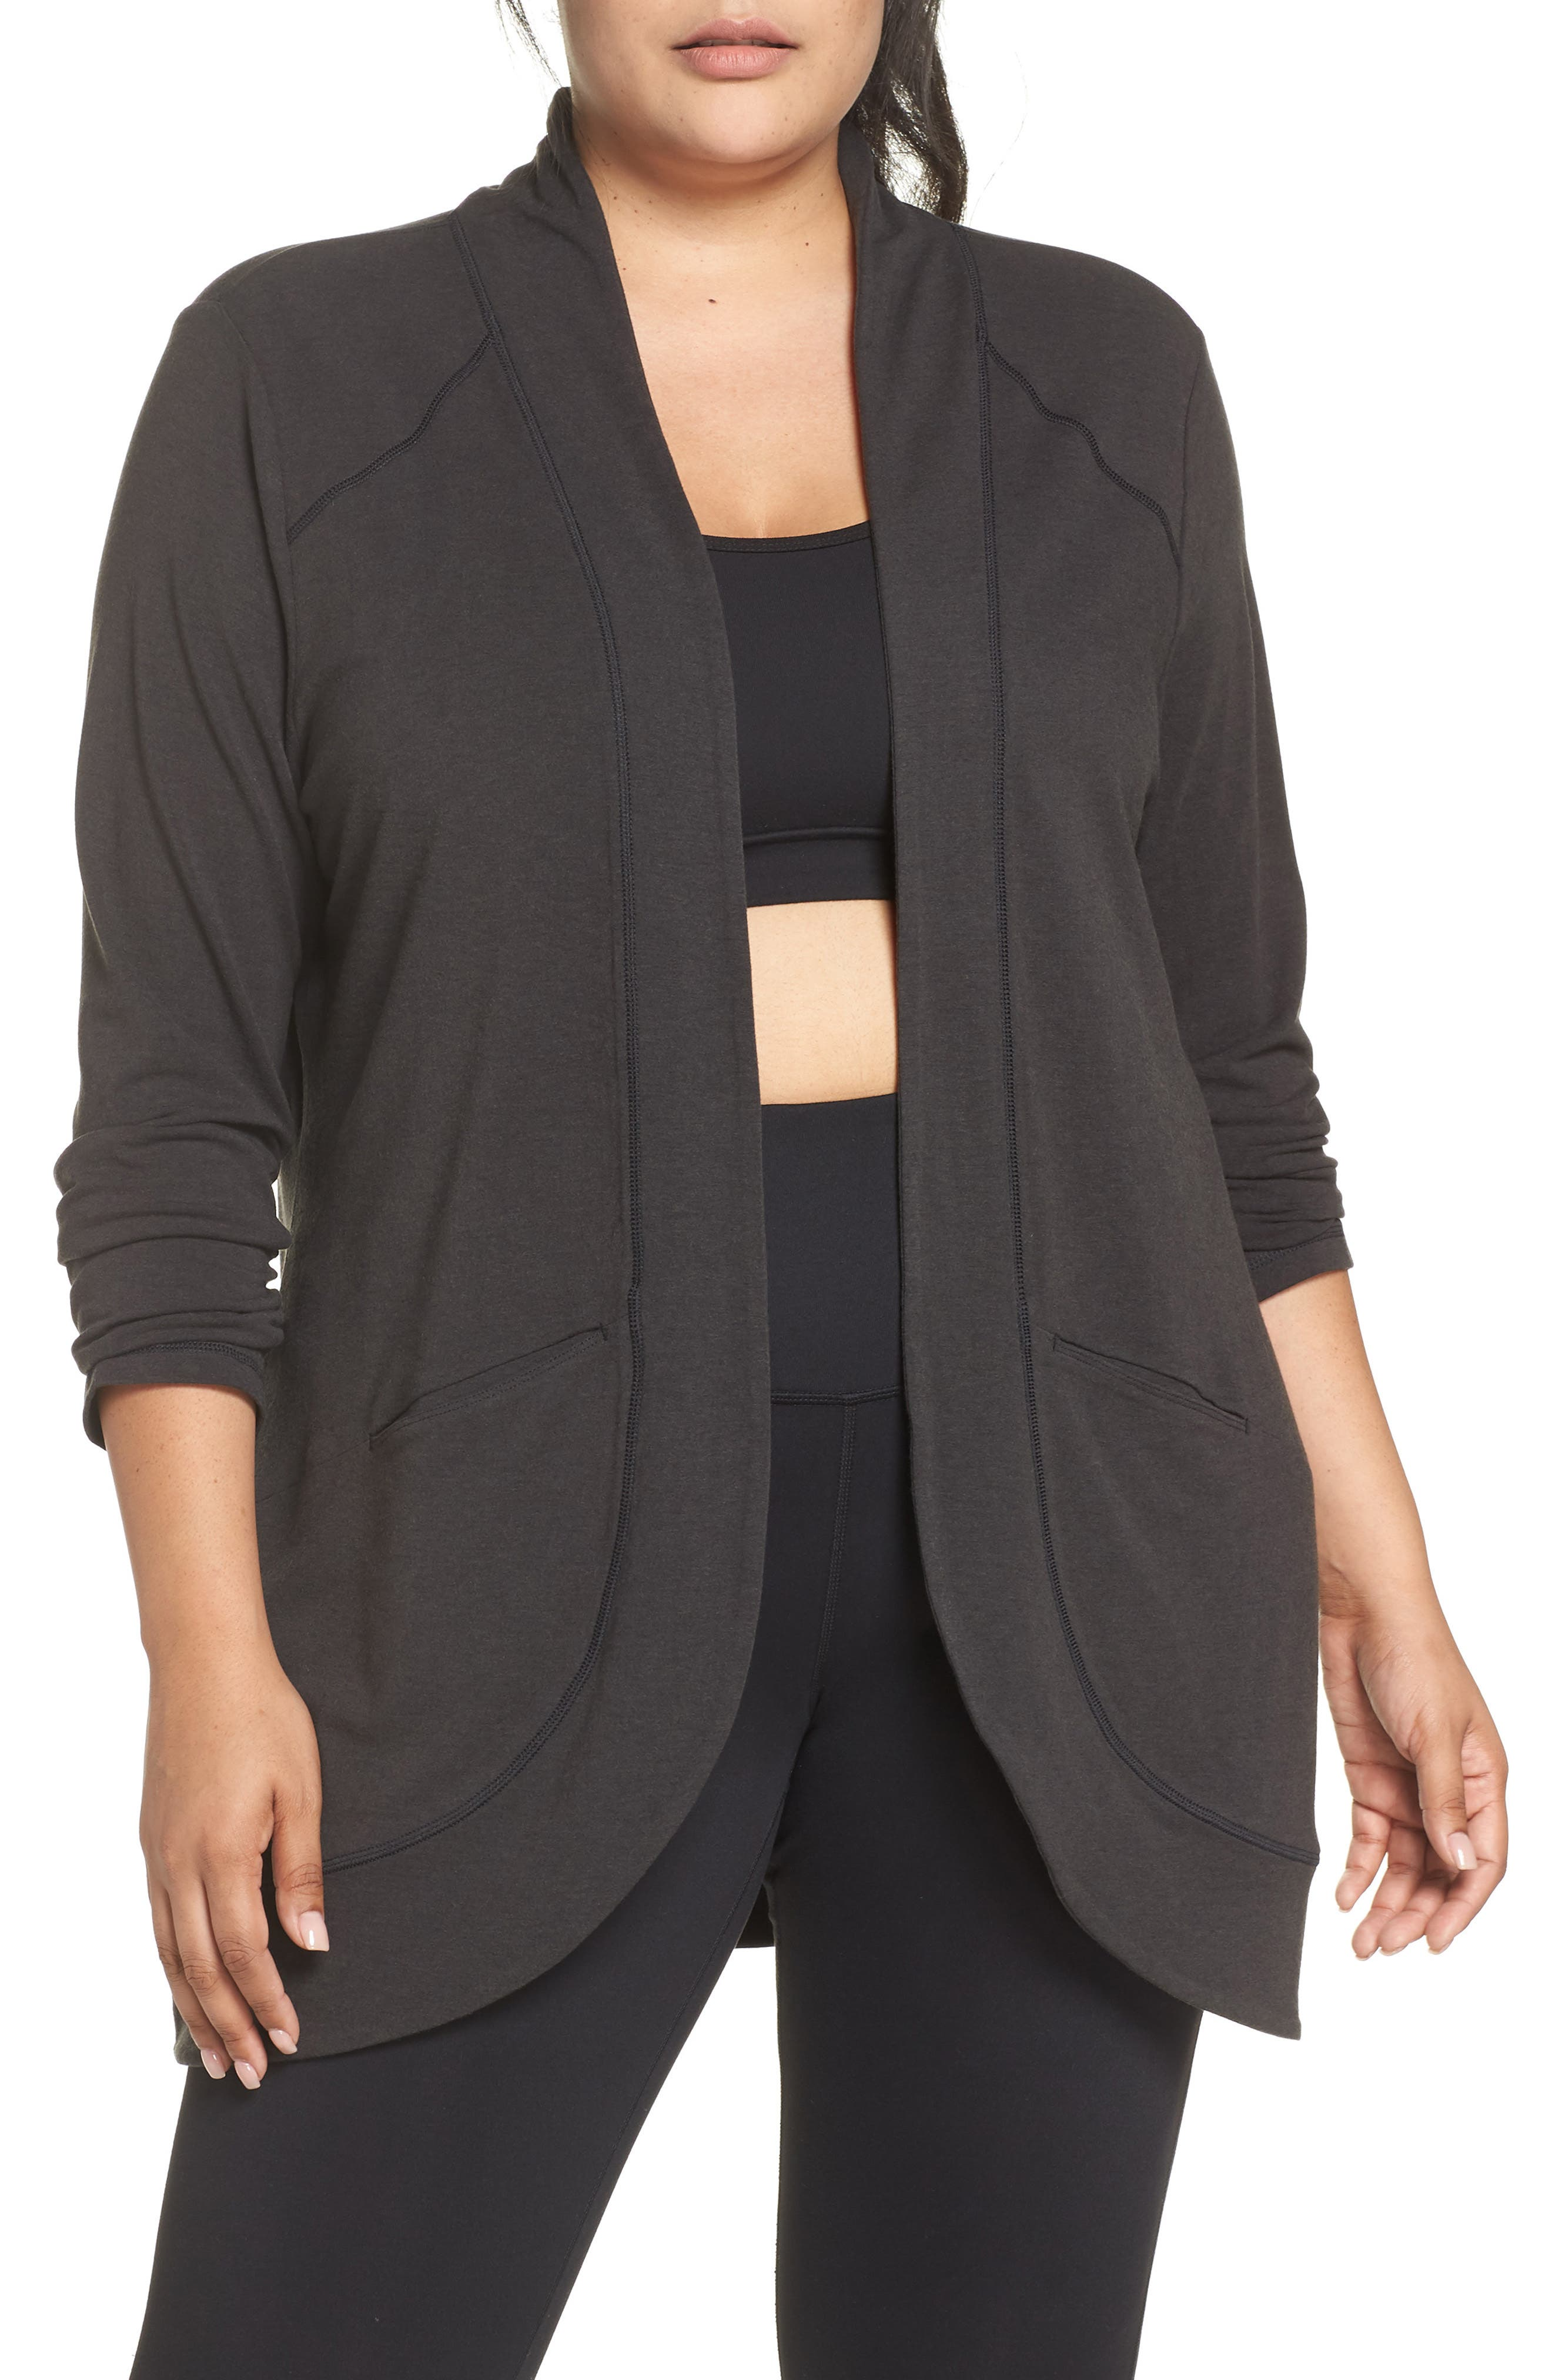 French Terry Cardigan,                             Main thumbnail 1, color,                             CHARCOAL BLACK / NAVY